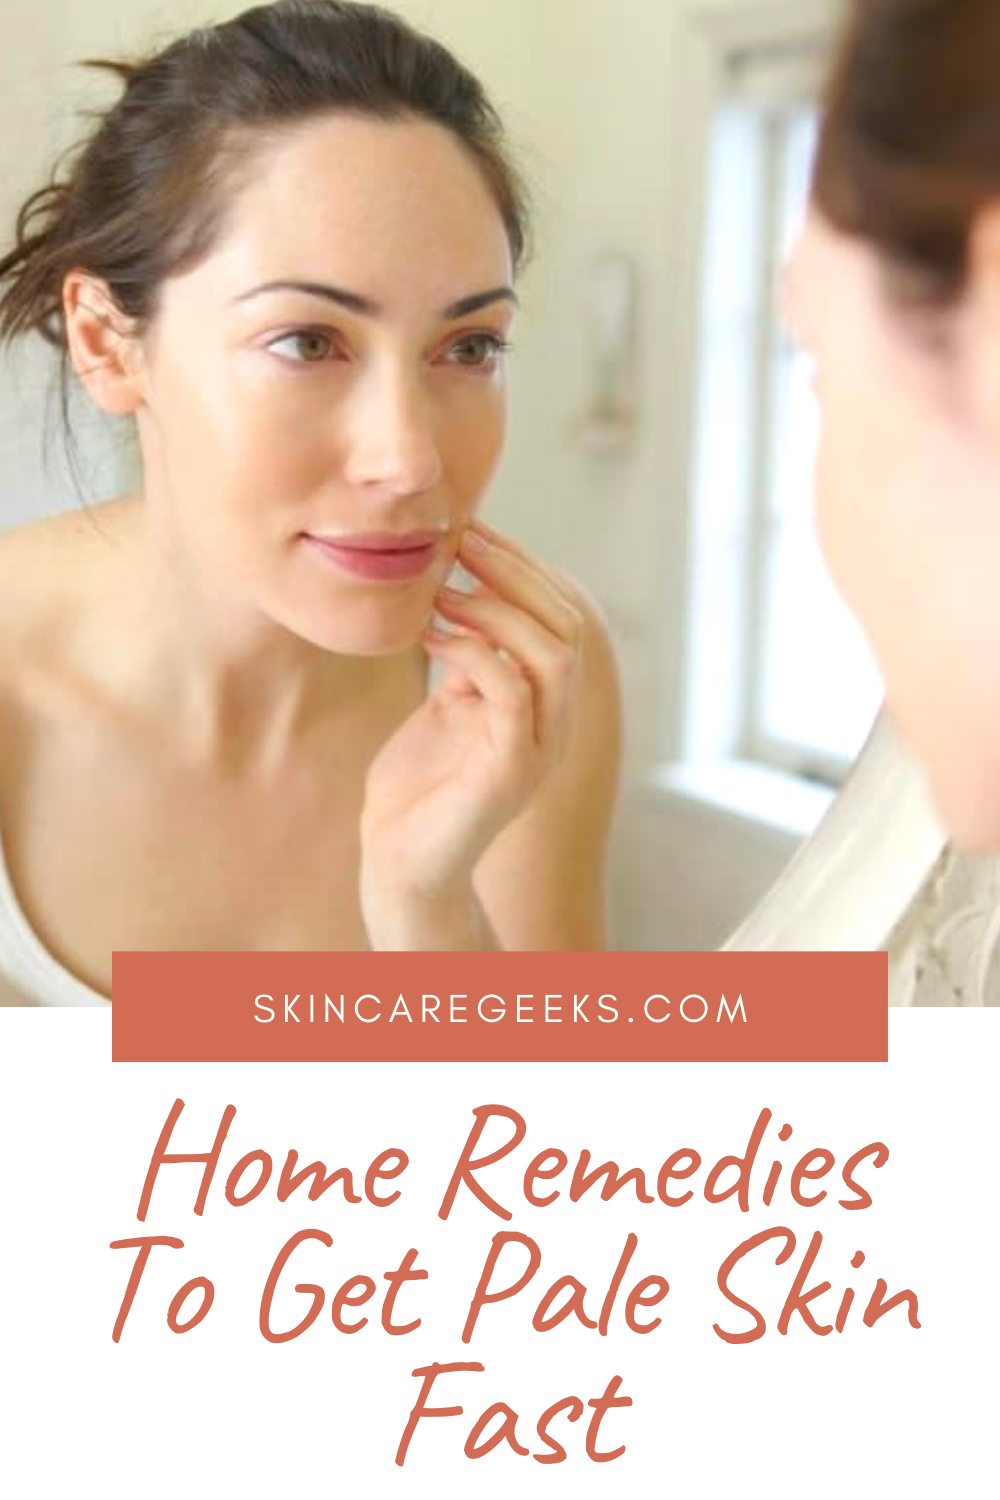 Home Remedies To Get Pale Skin Fast In 2020 Pale Olive Skin Pale Skin Natural Skin Care Remedies